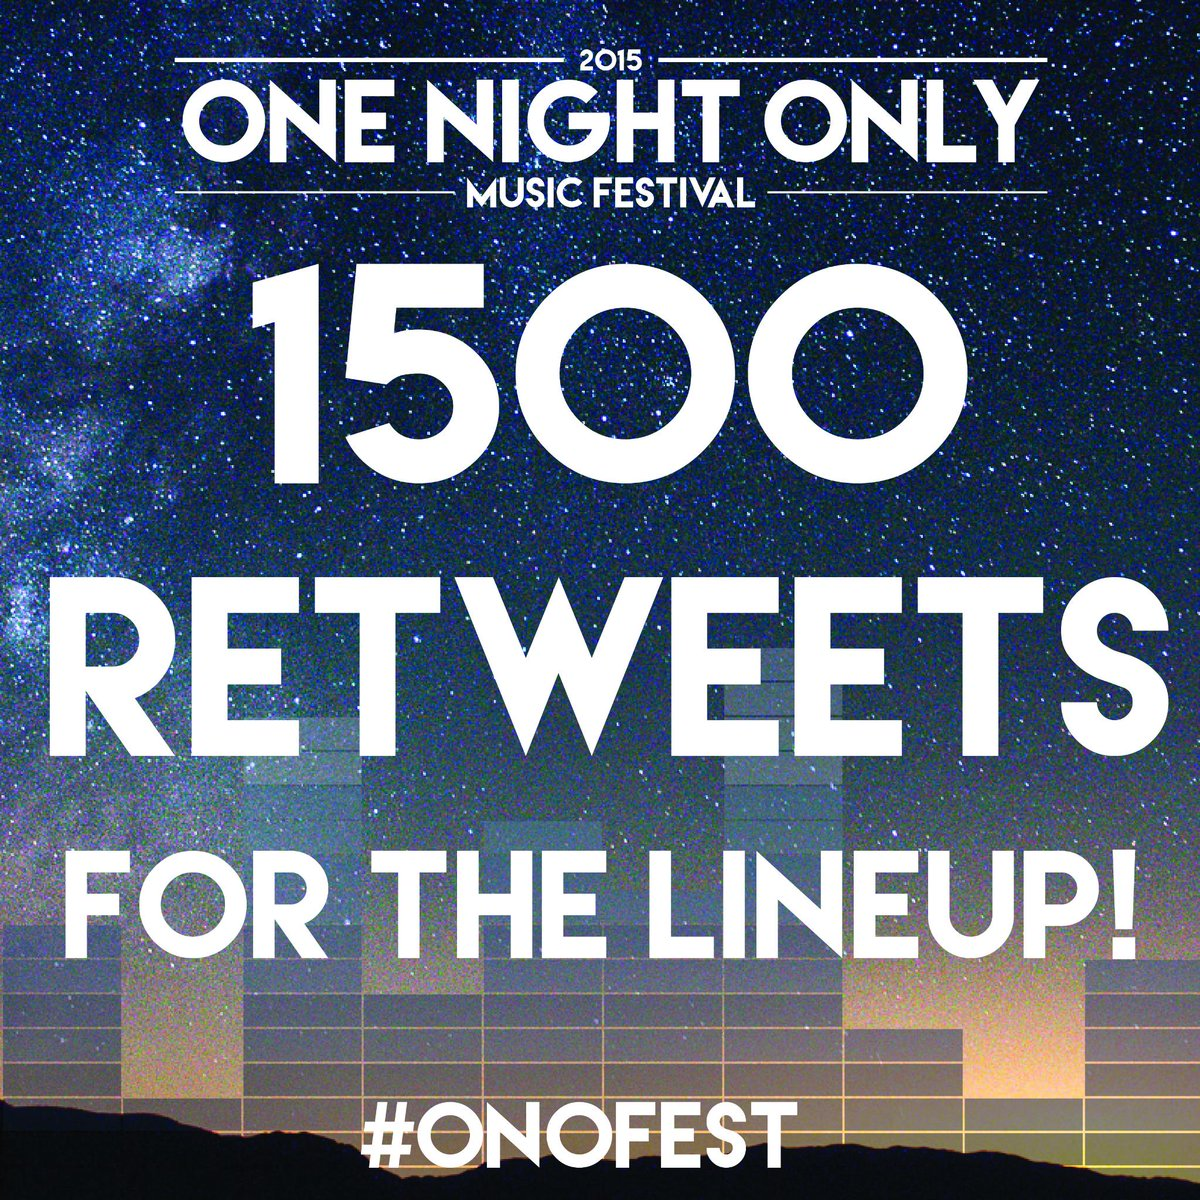 Last year we got 750 retweets in 30 minutes. Retweet & prove we're the #HottestCollegeInAmerica once again! @ONOfest http://t.co/HmlsYDh8lQ